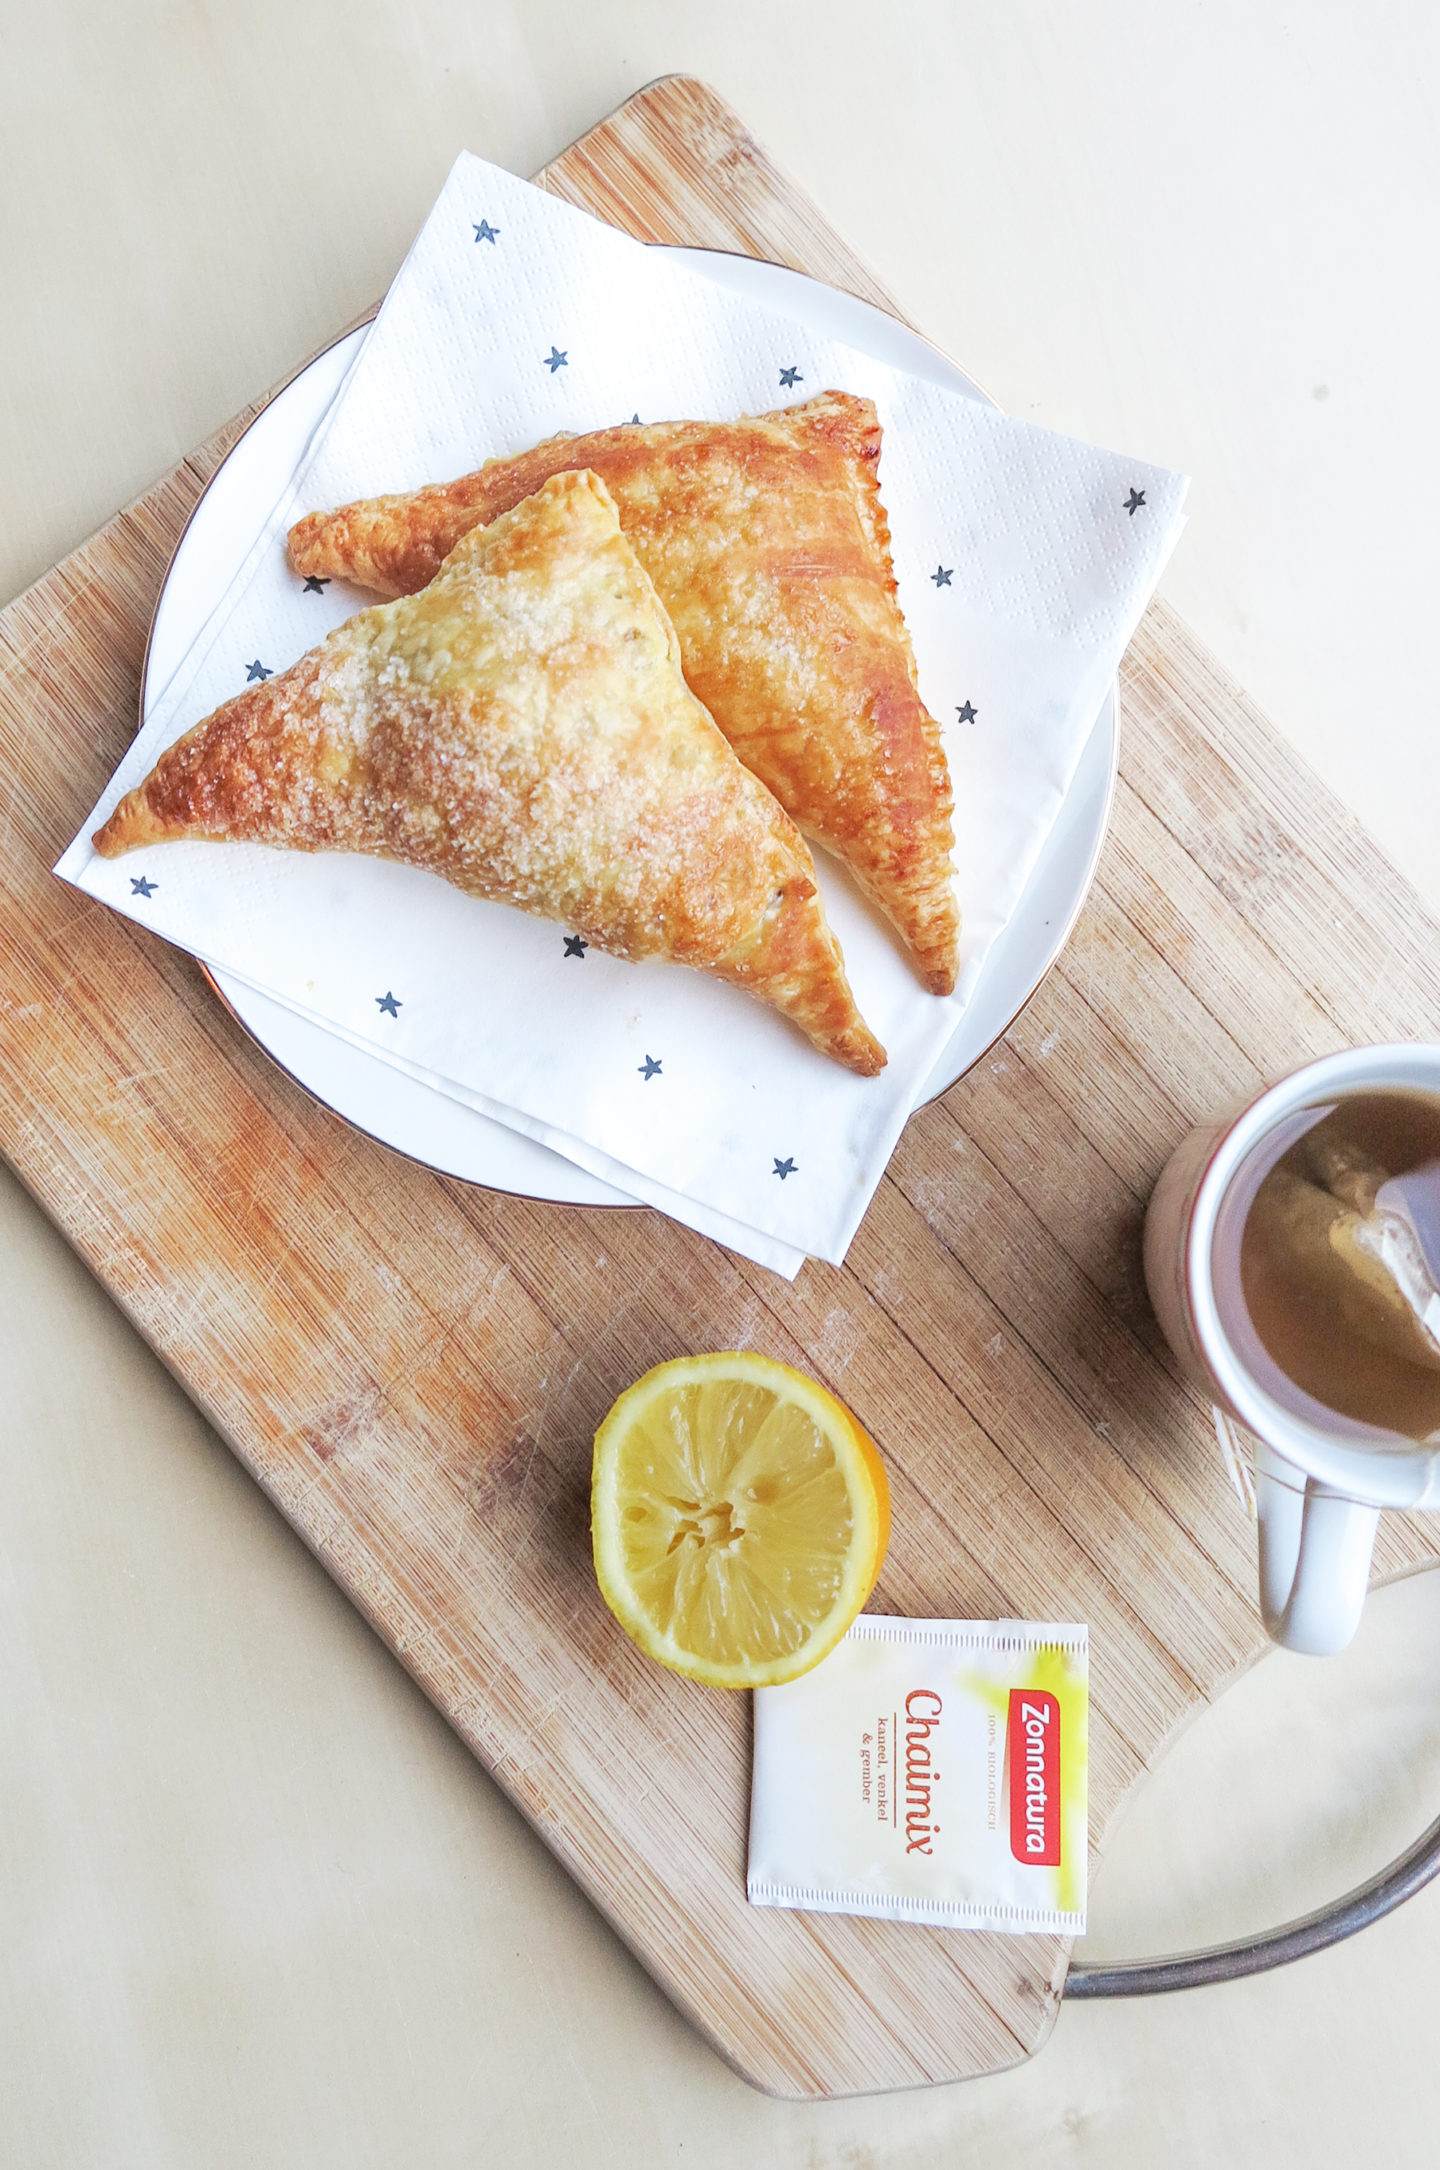 Vegan Friday – Apple turnovers